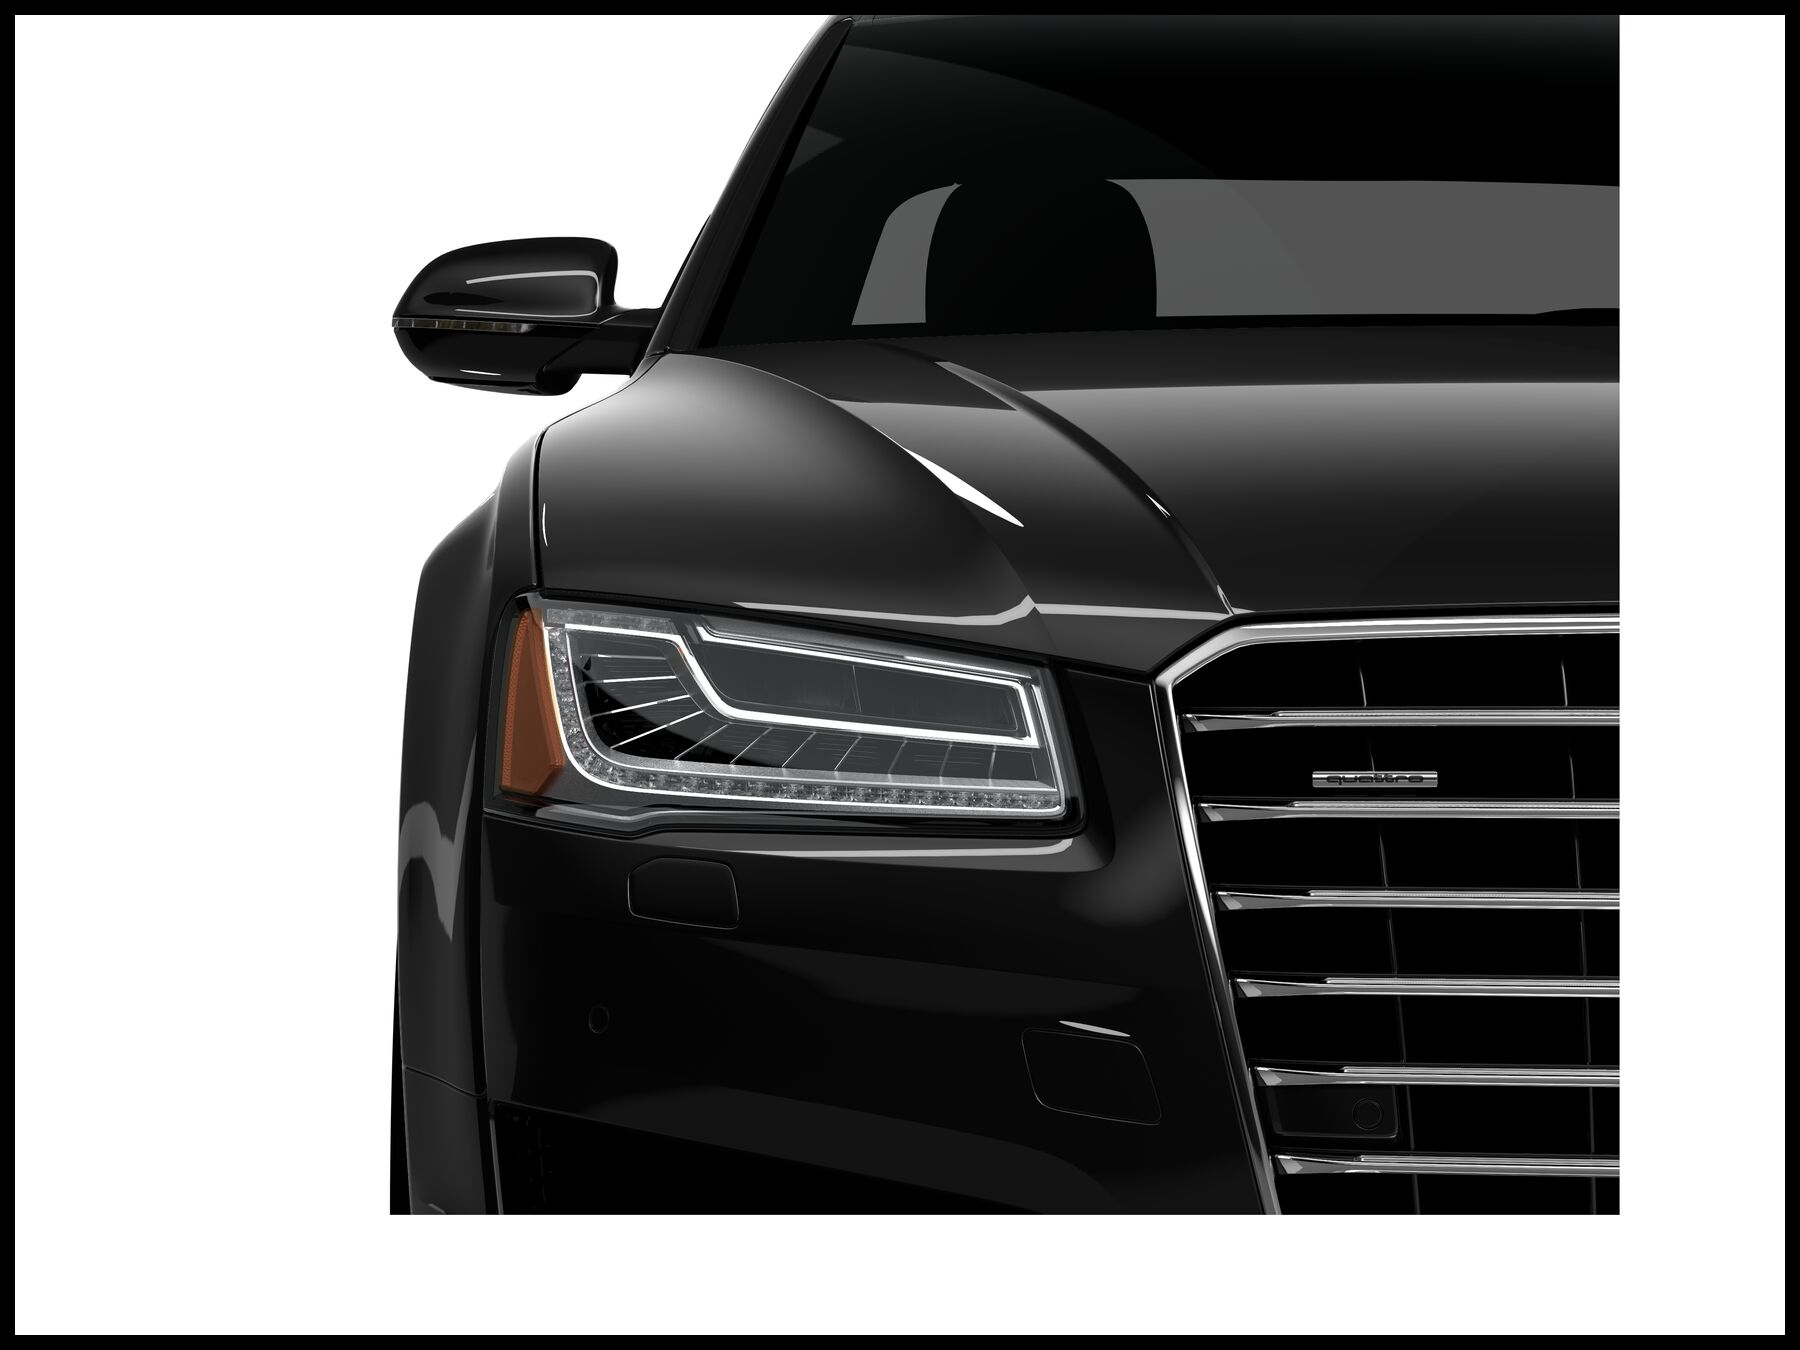 Audi Dealer Buffalo Ny Lovely towne Livery Vehicles